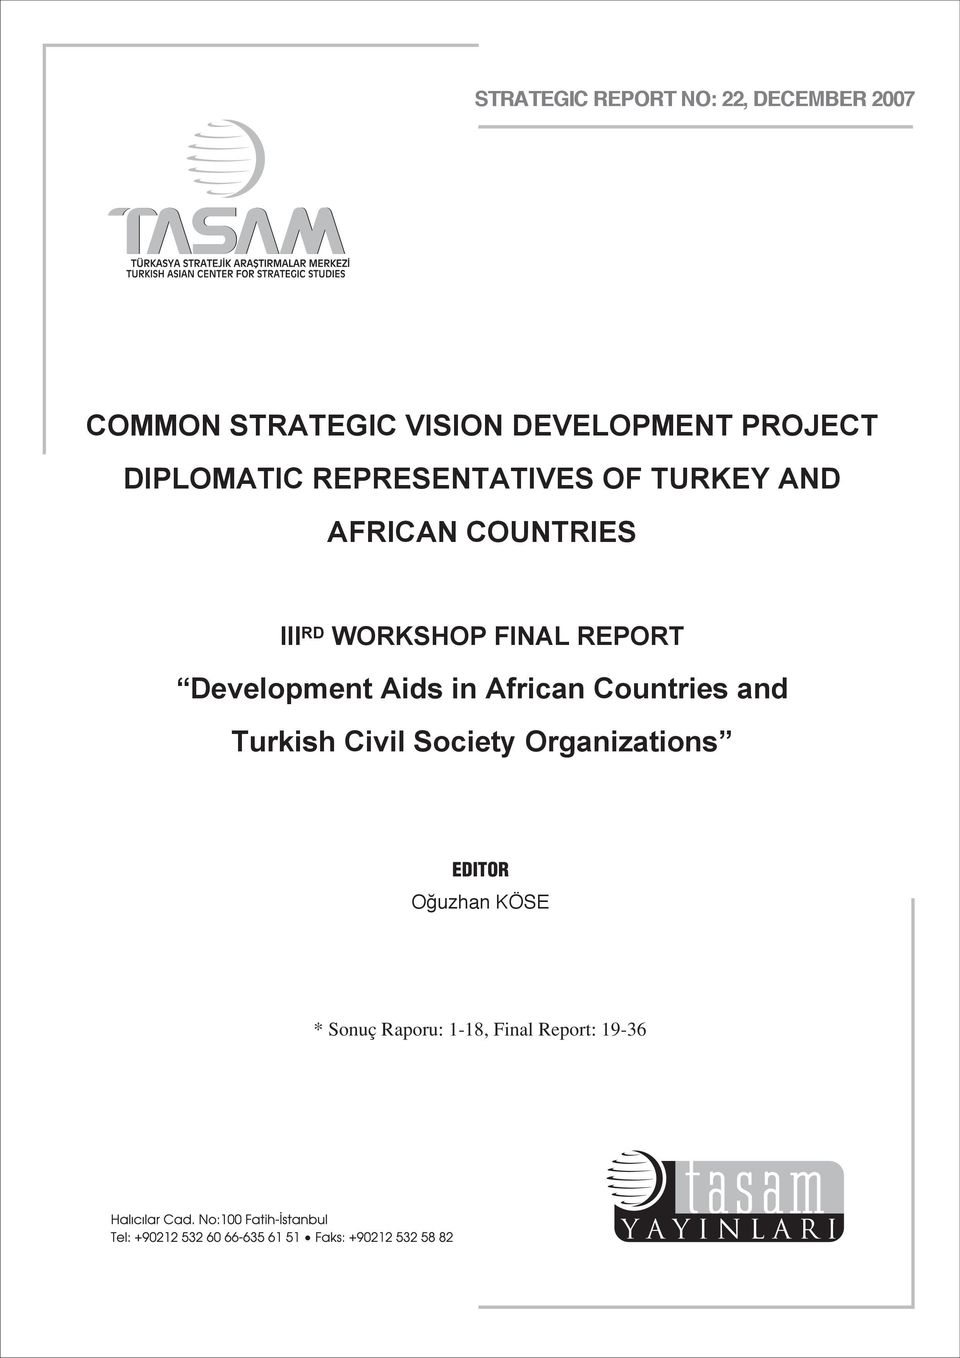 WORKSHOP FINAL REPORT Development Aids in African Countries and Turkish Civil